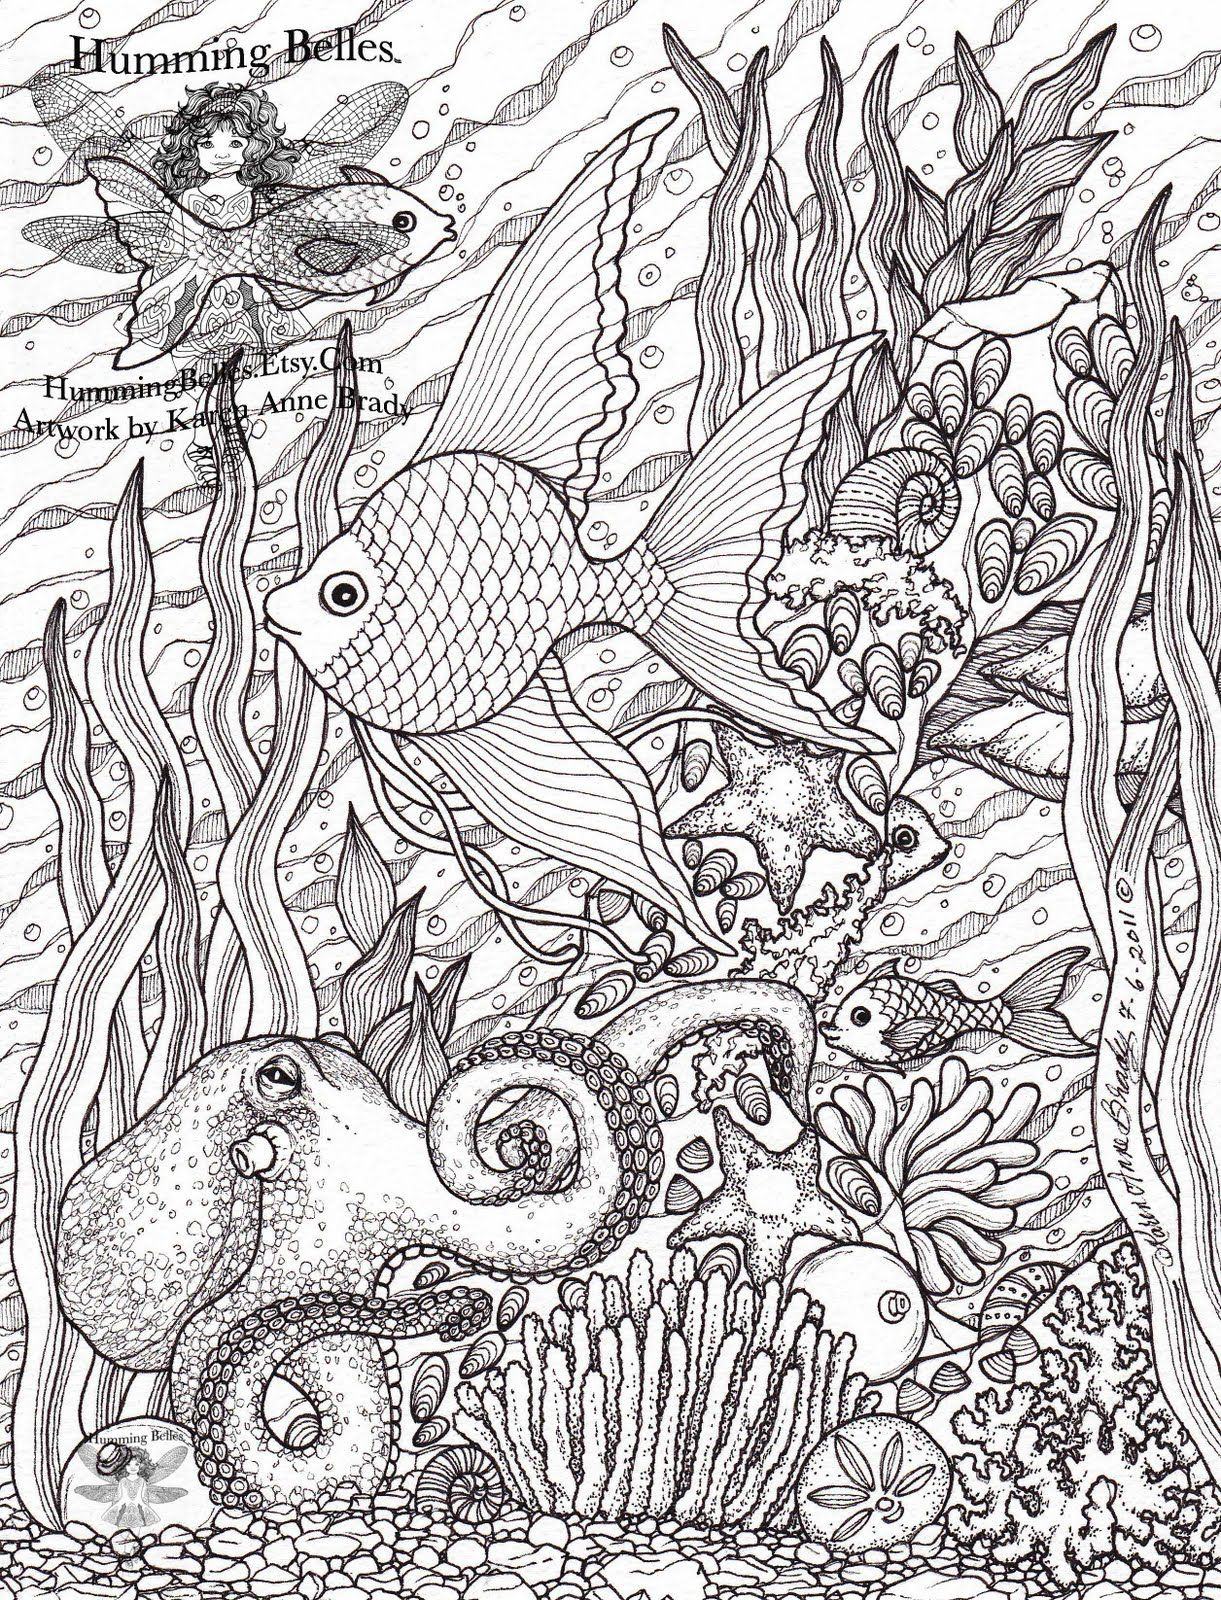 humming belles undersea illustrations and colouring pages - Hard Coloring Pages